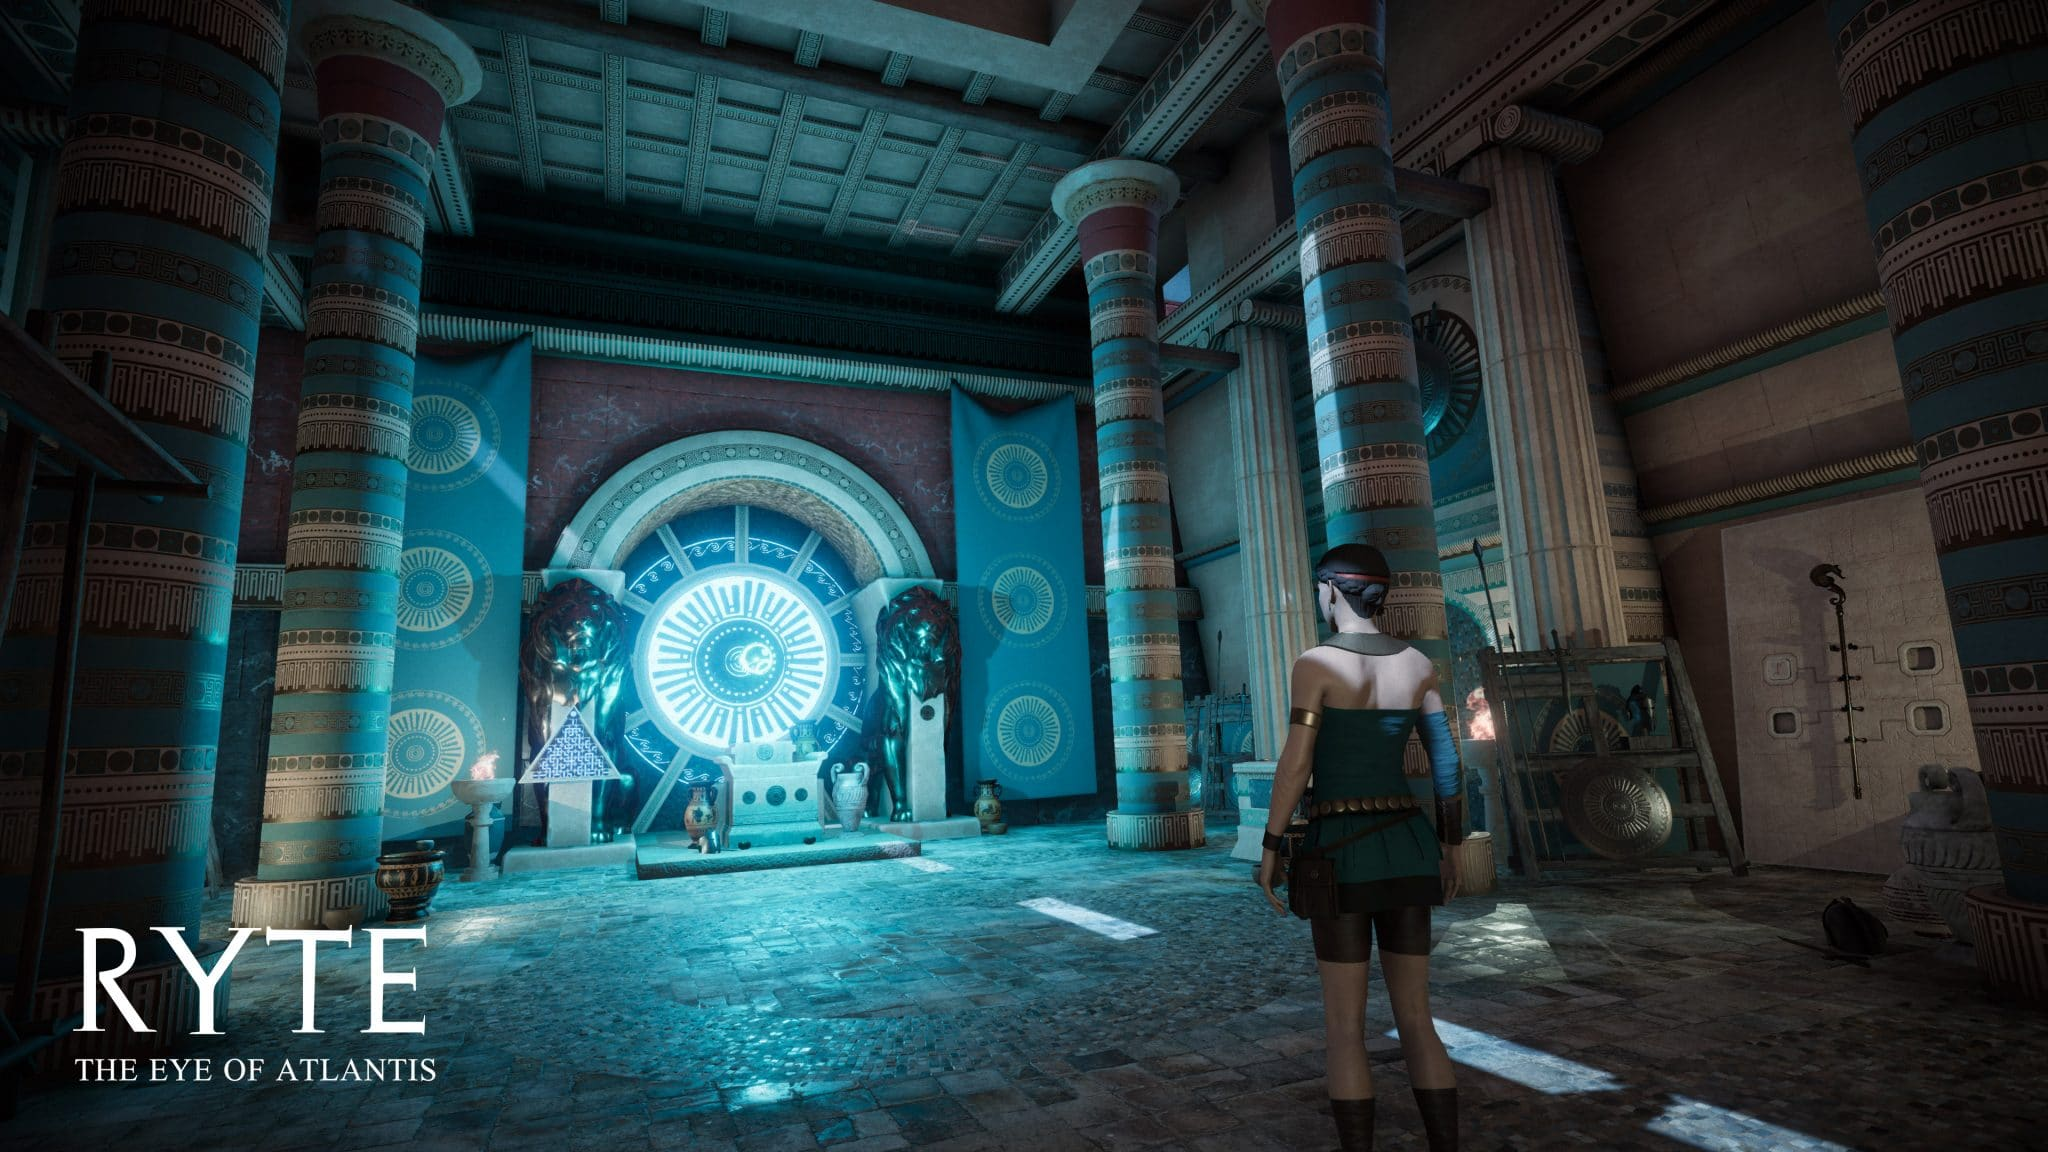 ryte eye of atlantis vr game